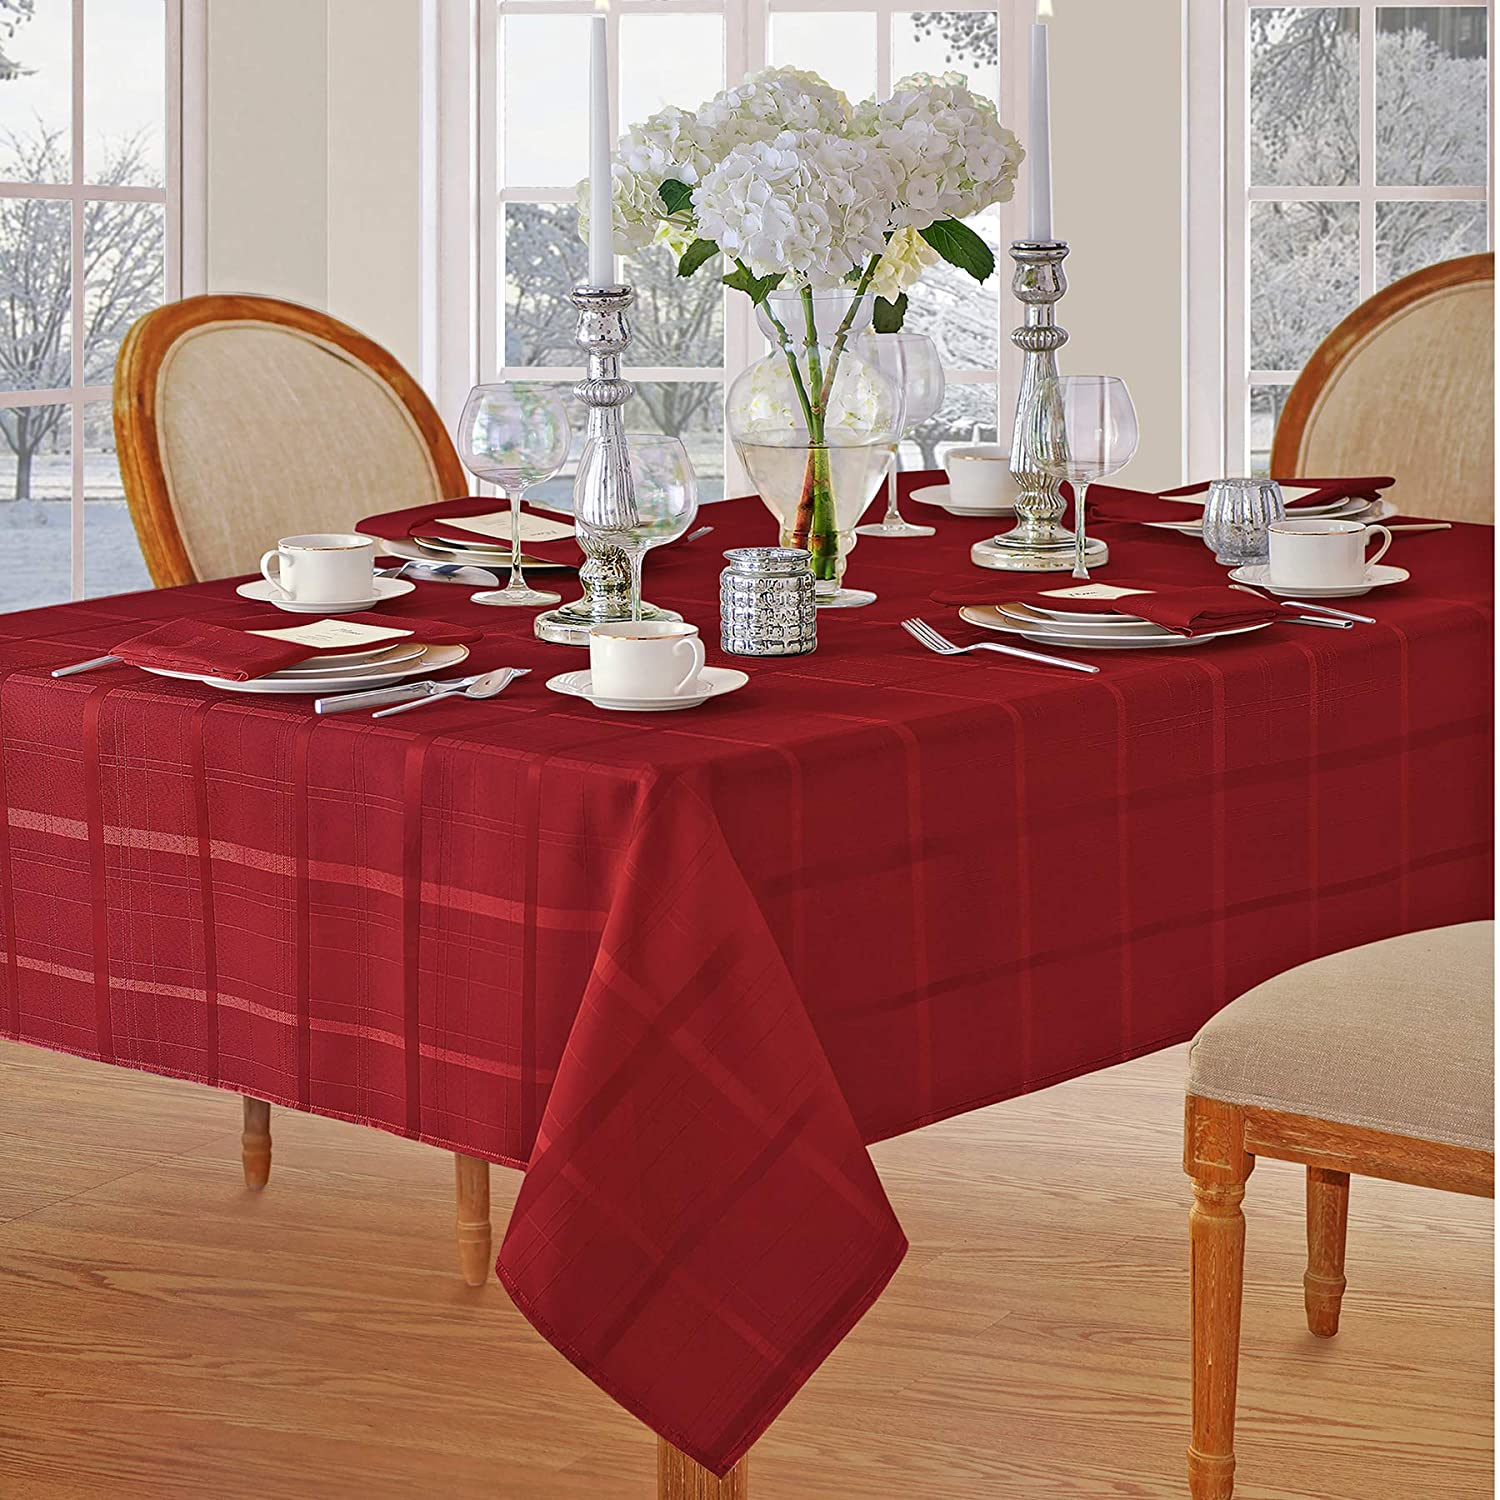 Newbridge Elegance Plaid Christmas Fabric Tablecloth, 100% Polyester, No Iron, Soil Resistant Holiday Tablecloth,60 Inch x 144 Inch Oblong/Rectangle, Poinsettia Red